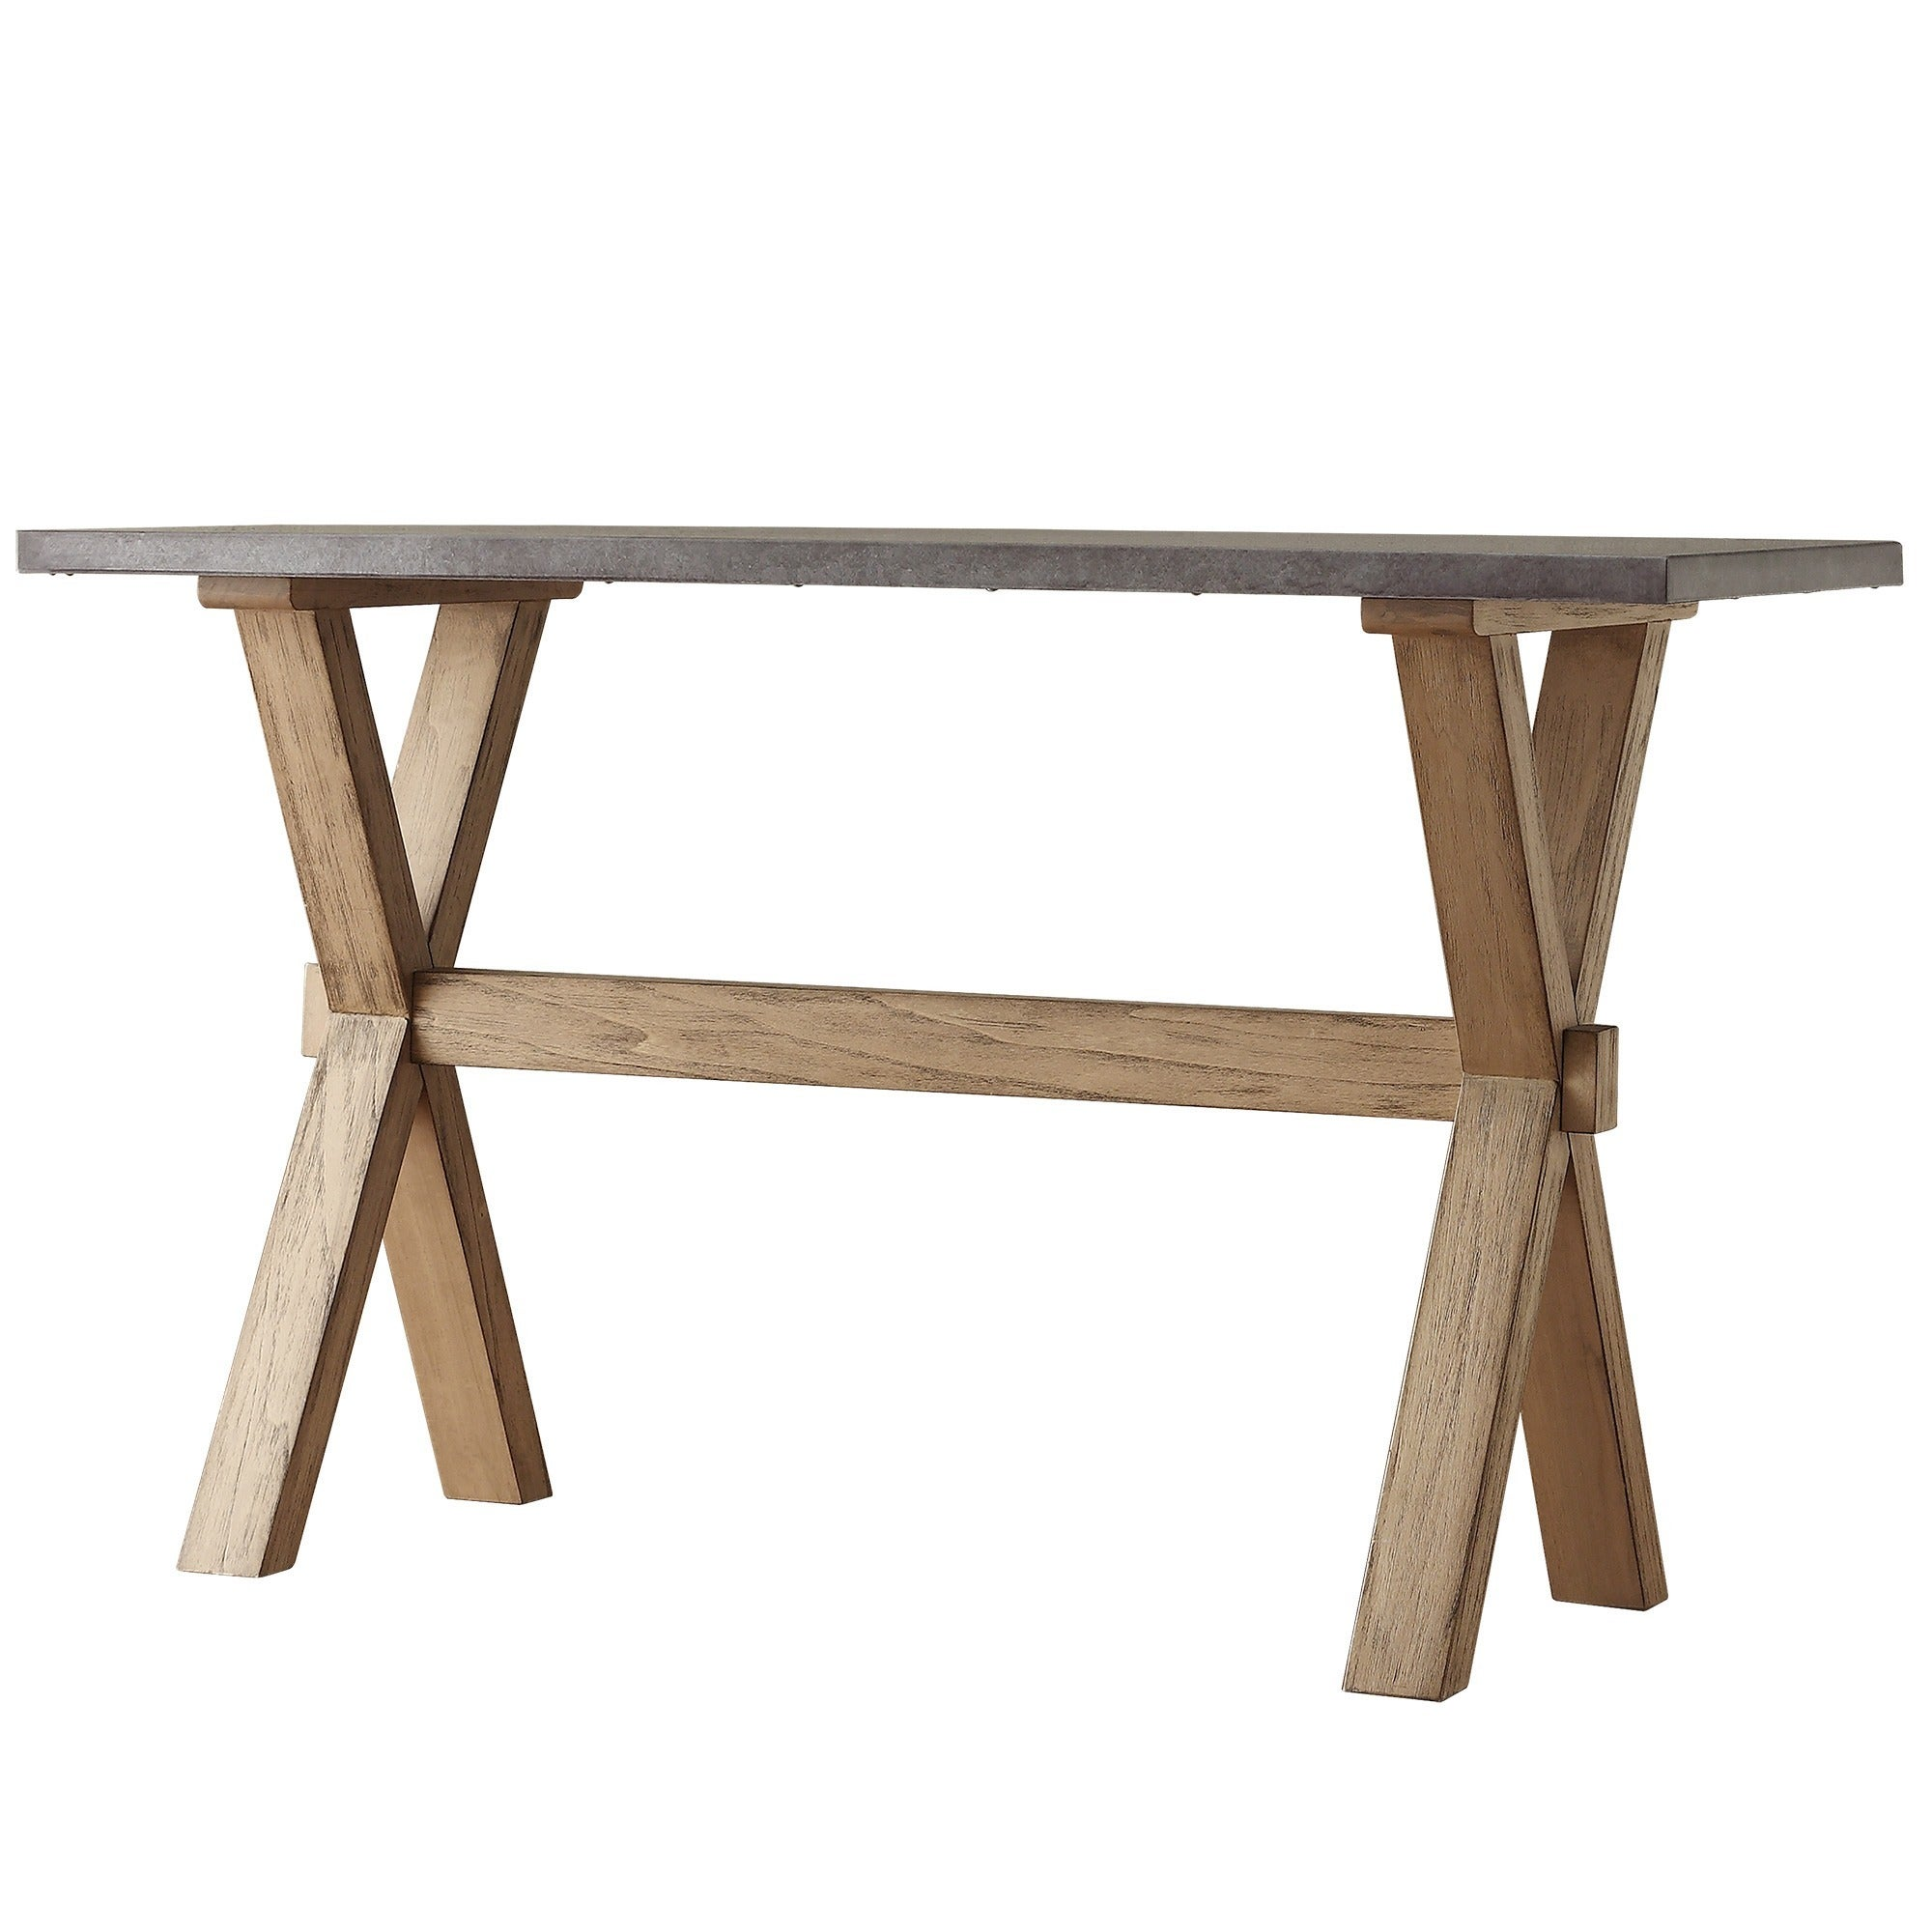 Aberdeen Industrial Zinc Top Weathered Oak Trestle TV Stand by iNSPIRE Q  Artisan - Free Shipping Today - Overstock.com - 16985922